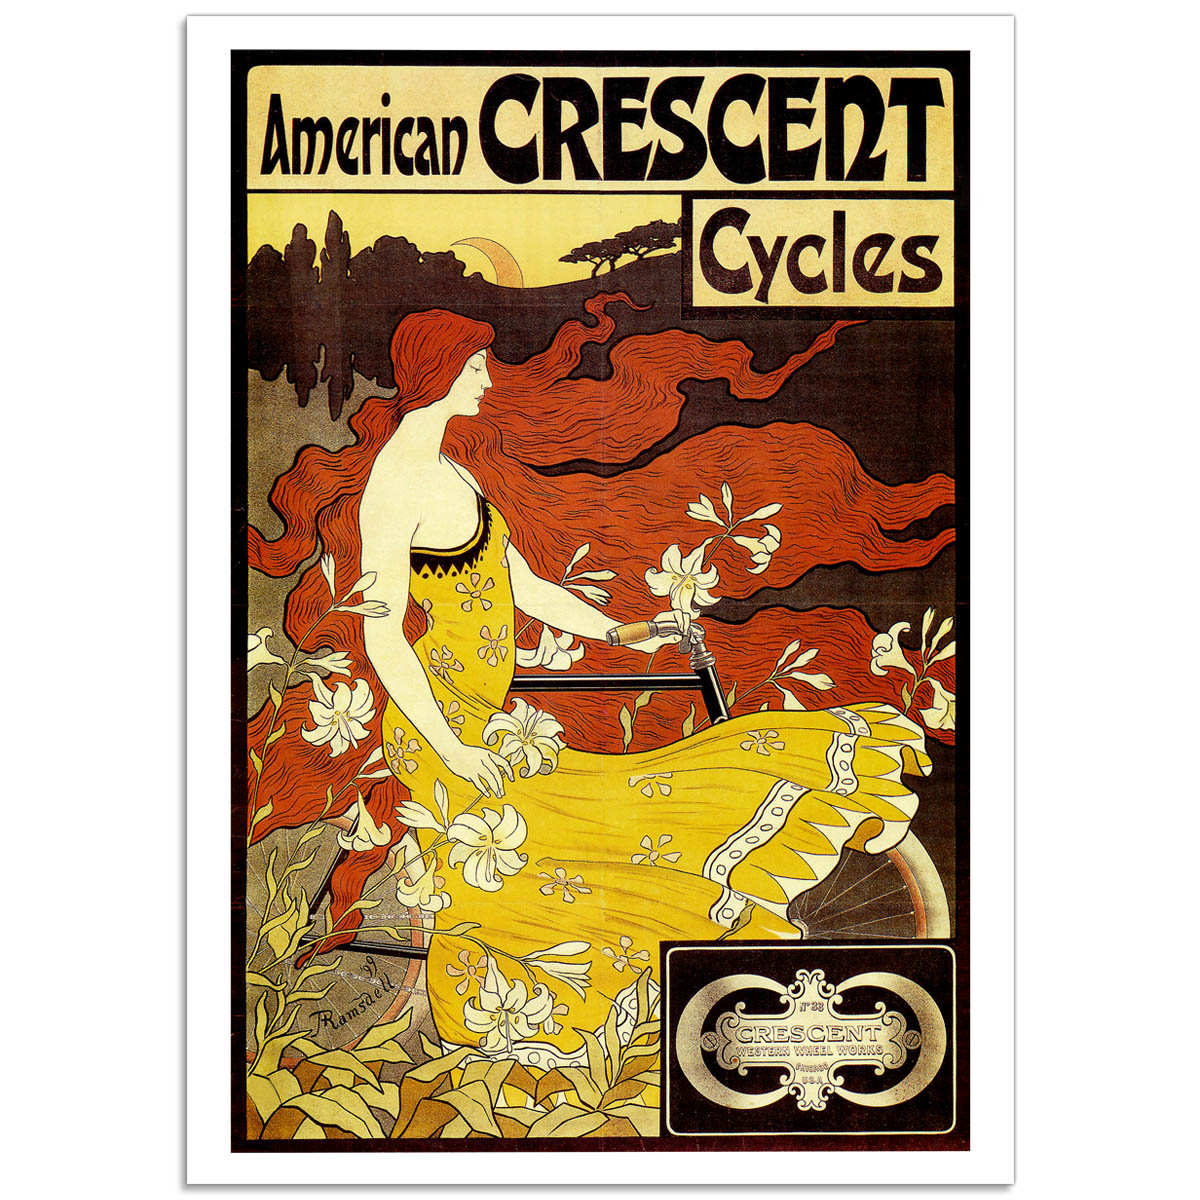 Vintage Bicycle Poster - American Crescent Cycles